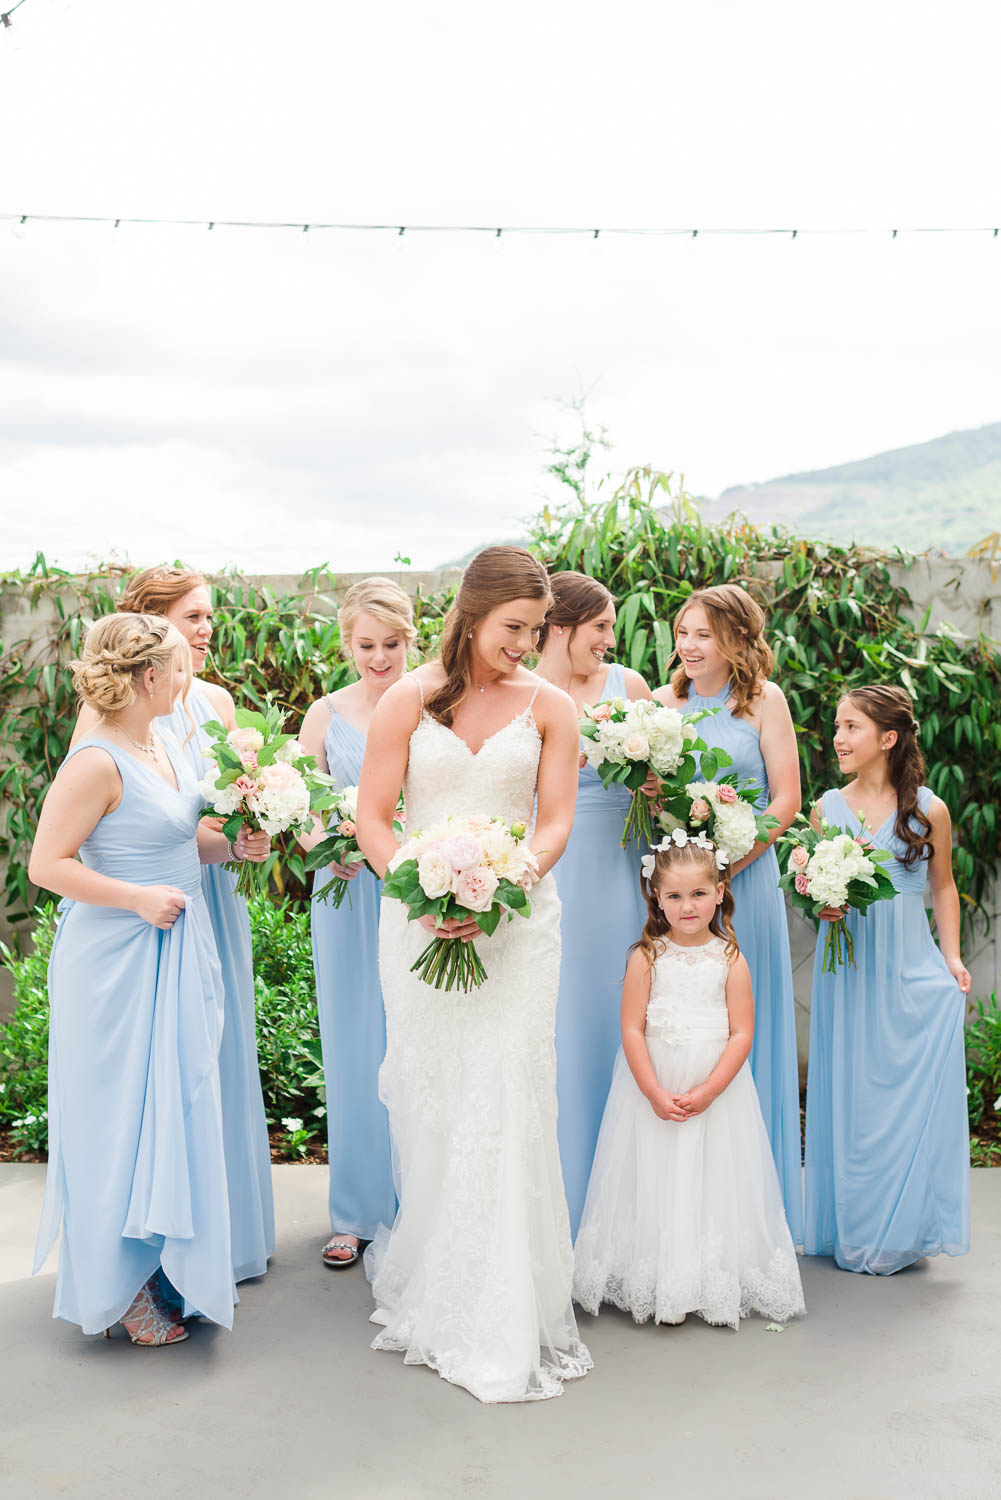 GIRLS OUTSIDE WEARING ICE BLUE BRIDESMAIDS DRESSES